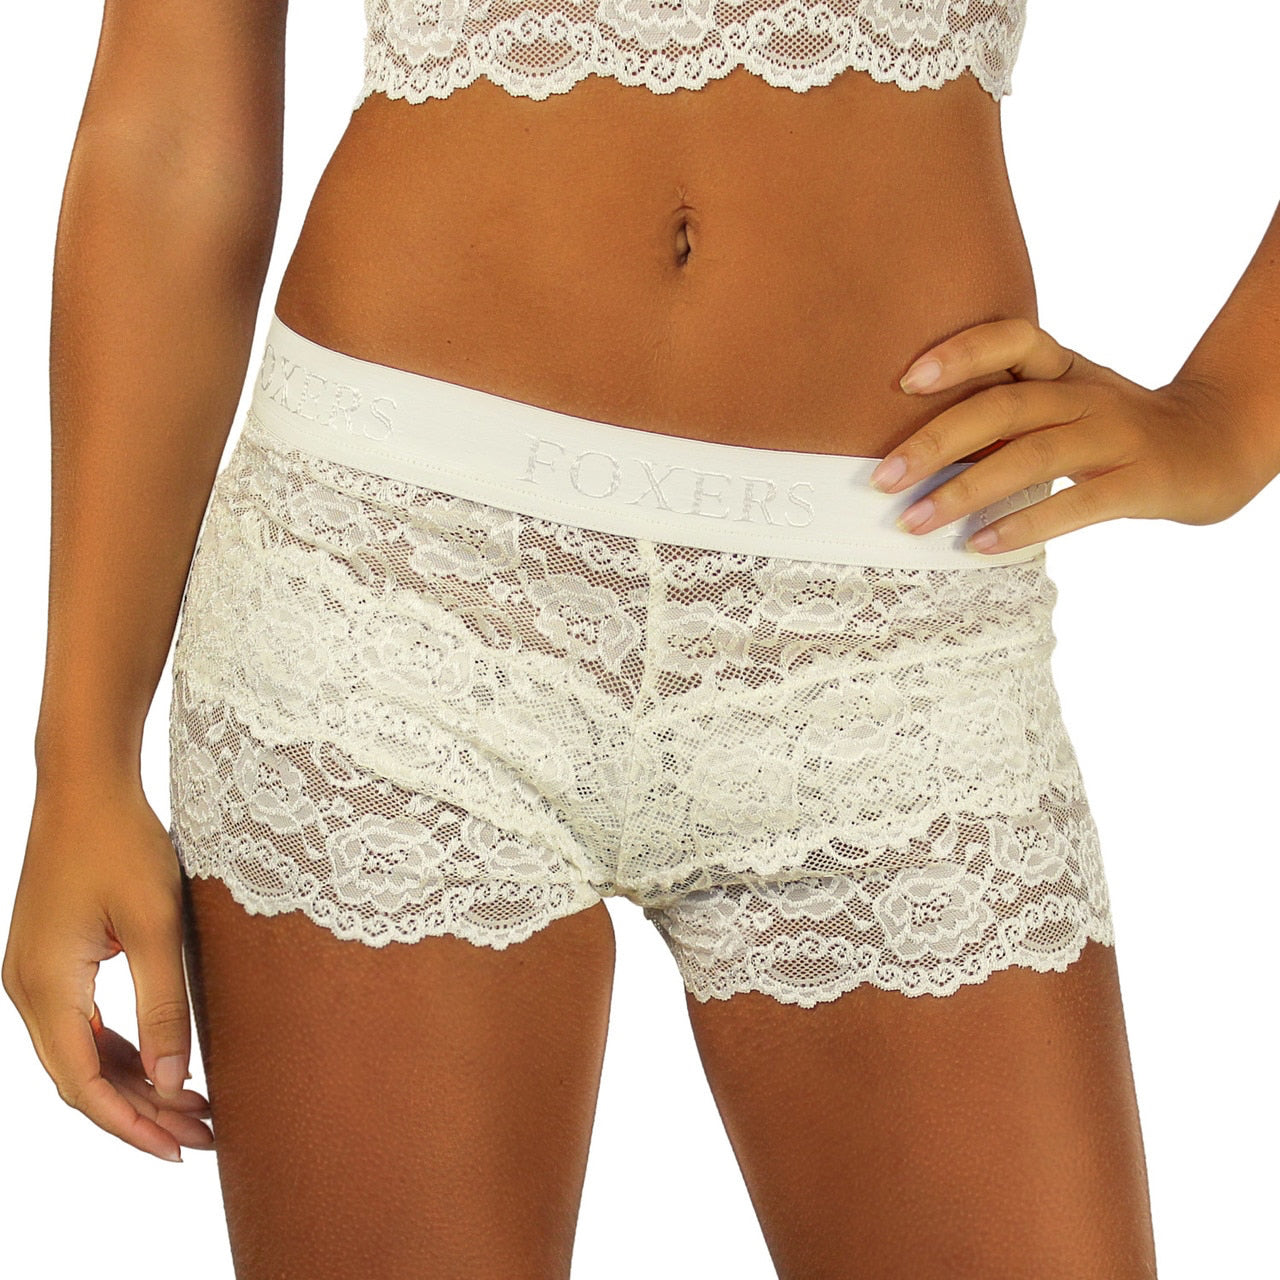 Foxers Ivory Lace Blue Bow Boxers with the signature FOXERS Band